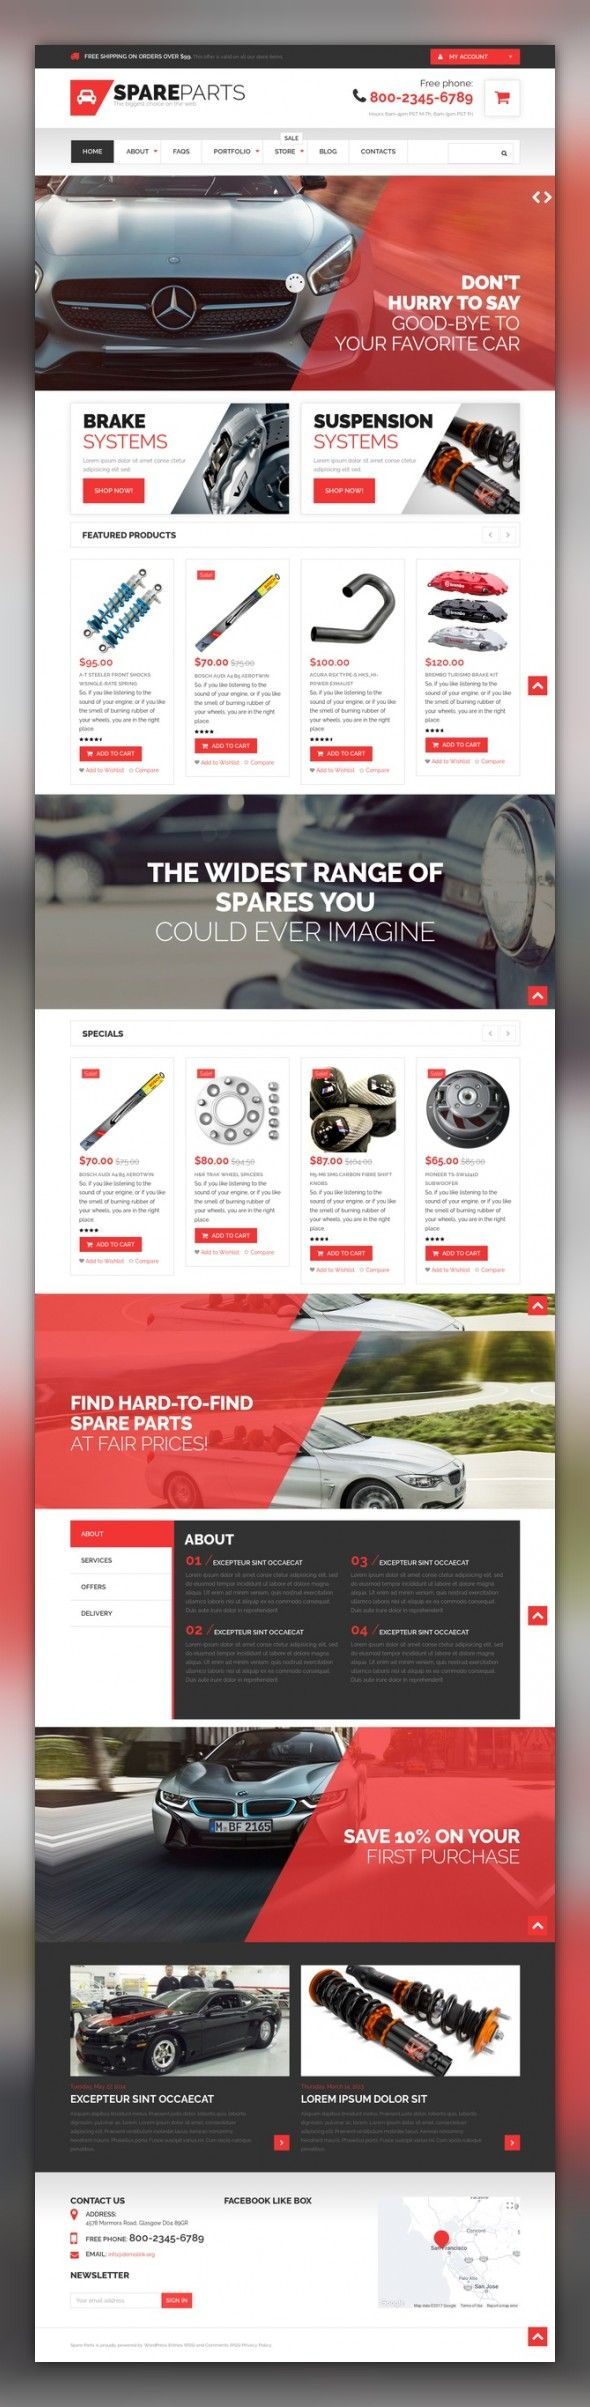 best 25 motorcycle parts store ideas on pinterest dirt bike